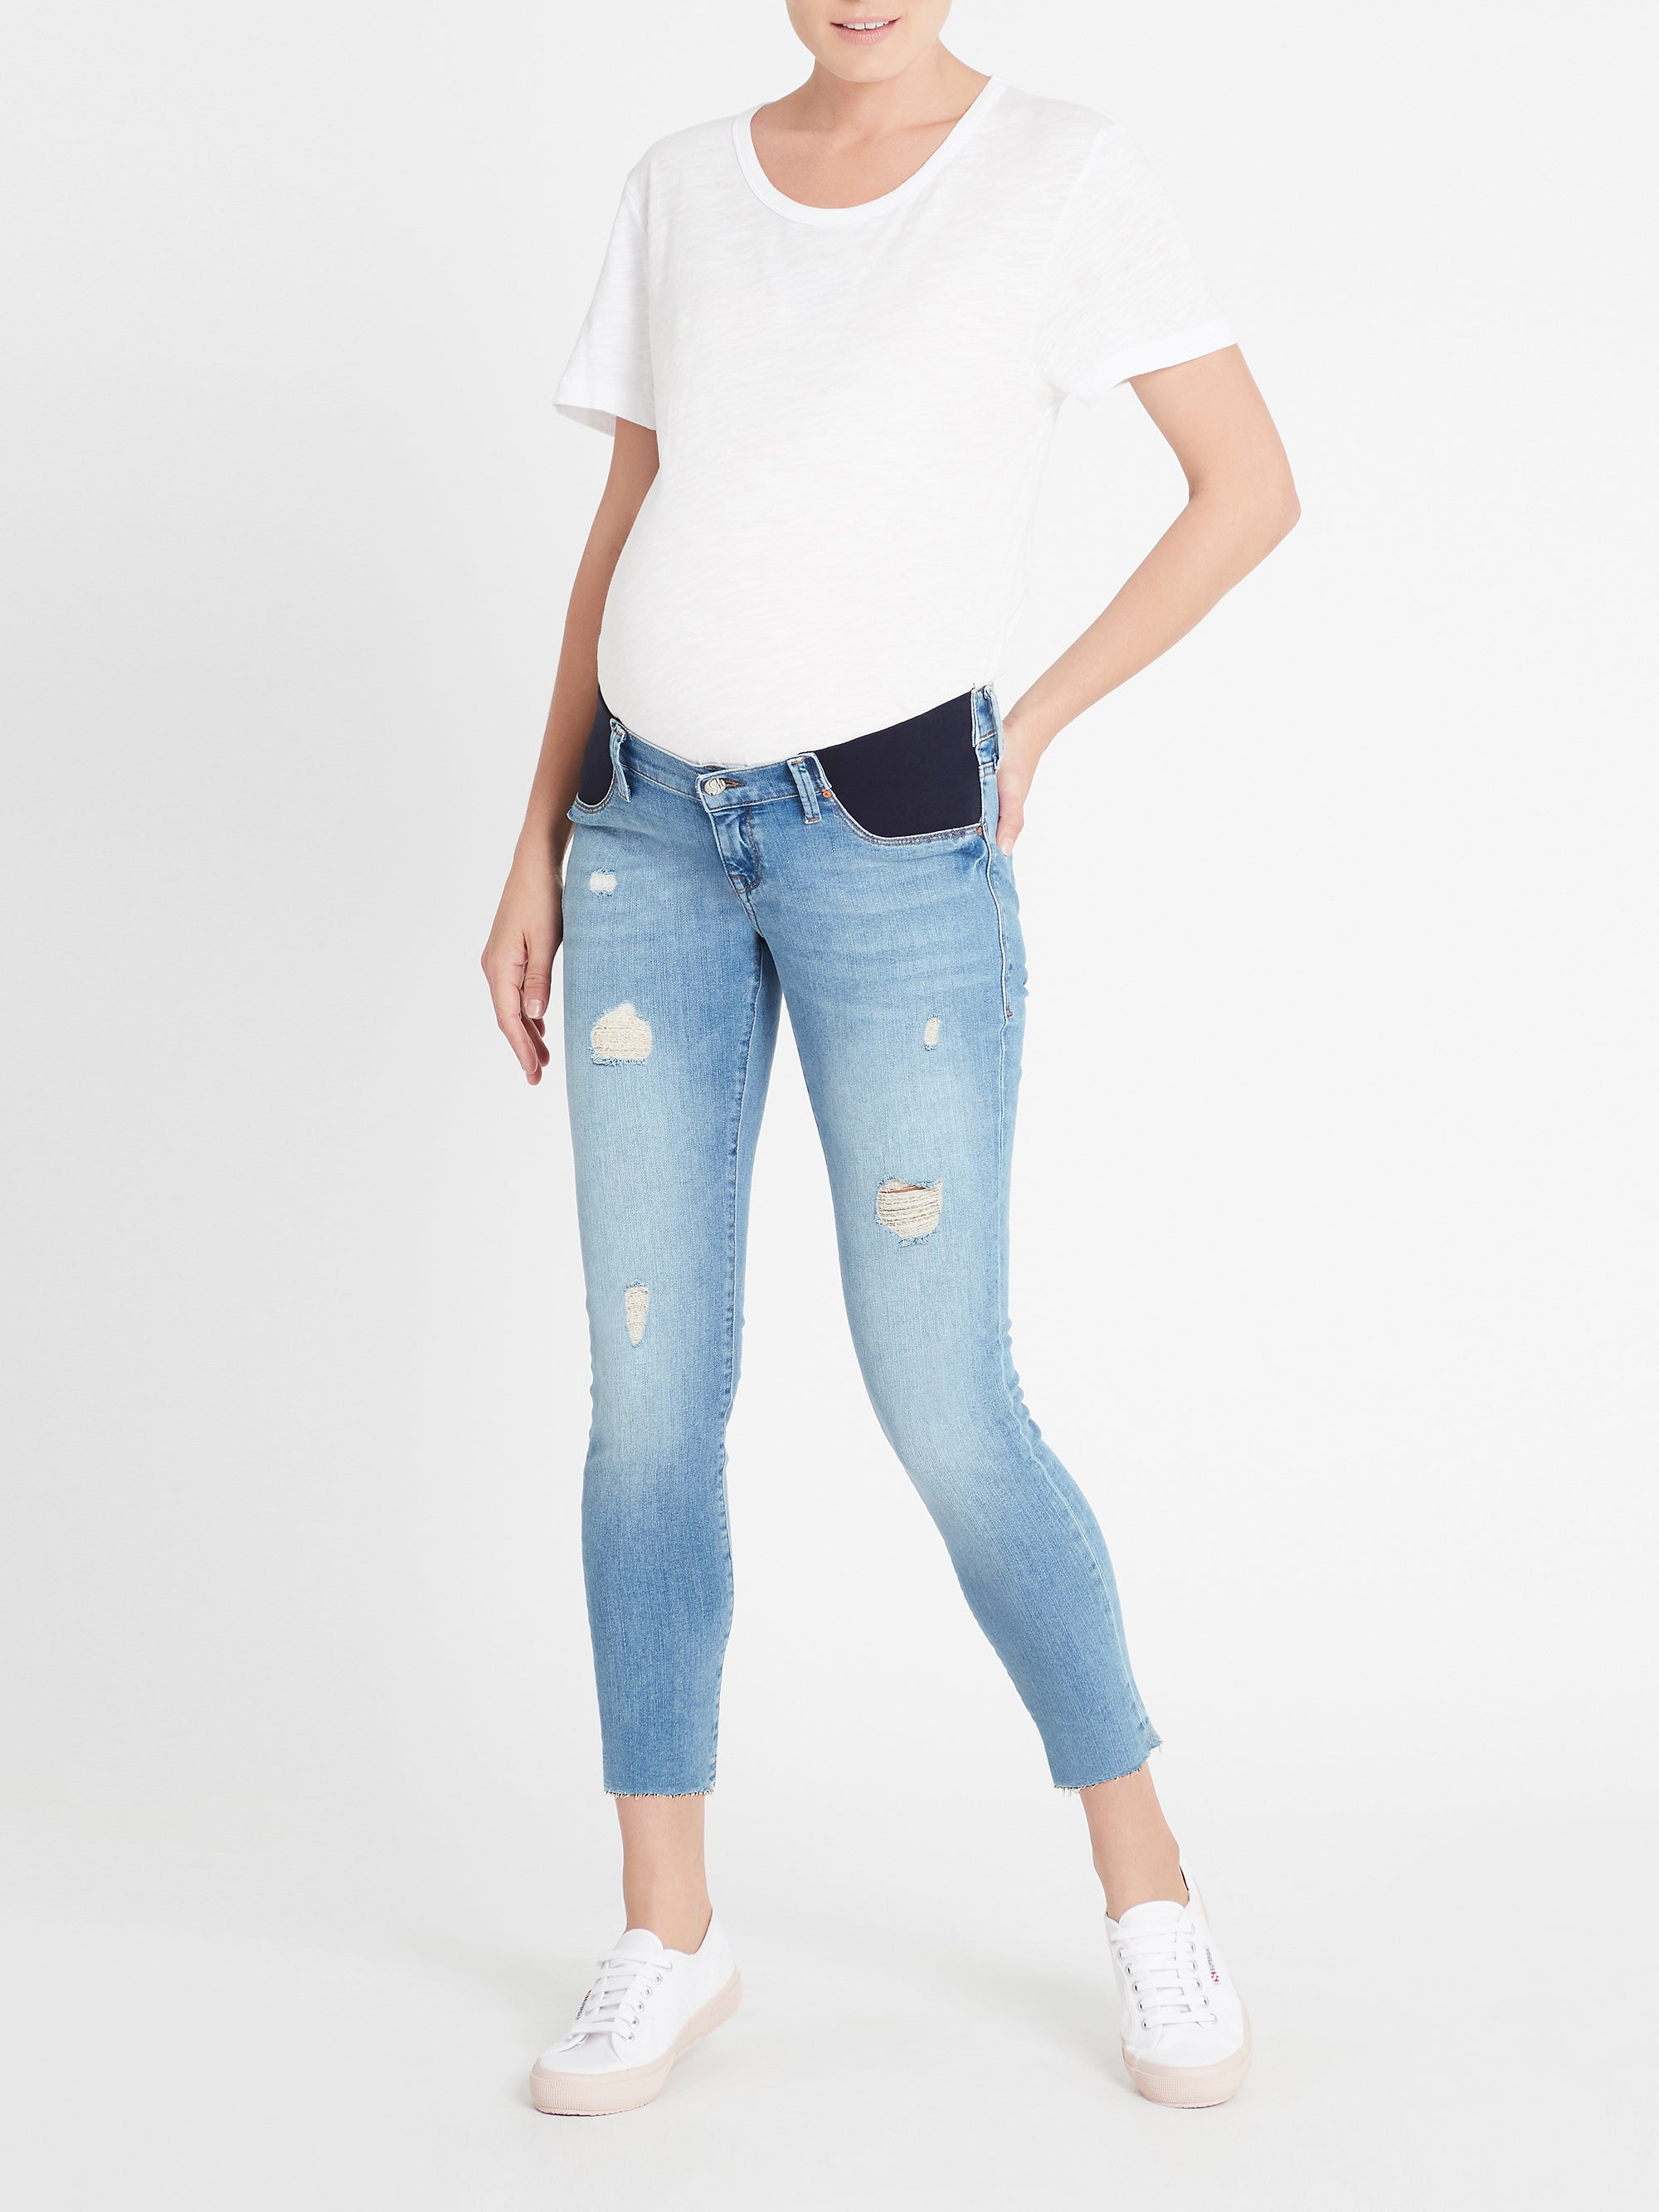 Reina Ankle Skinny Maternity Jeans in Light Ripped Vintage